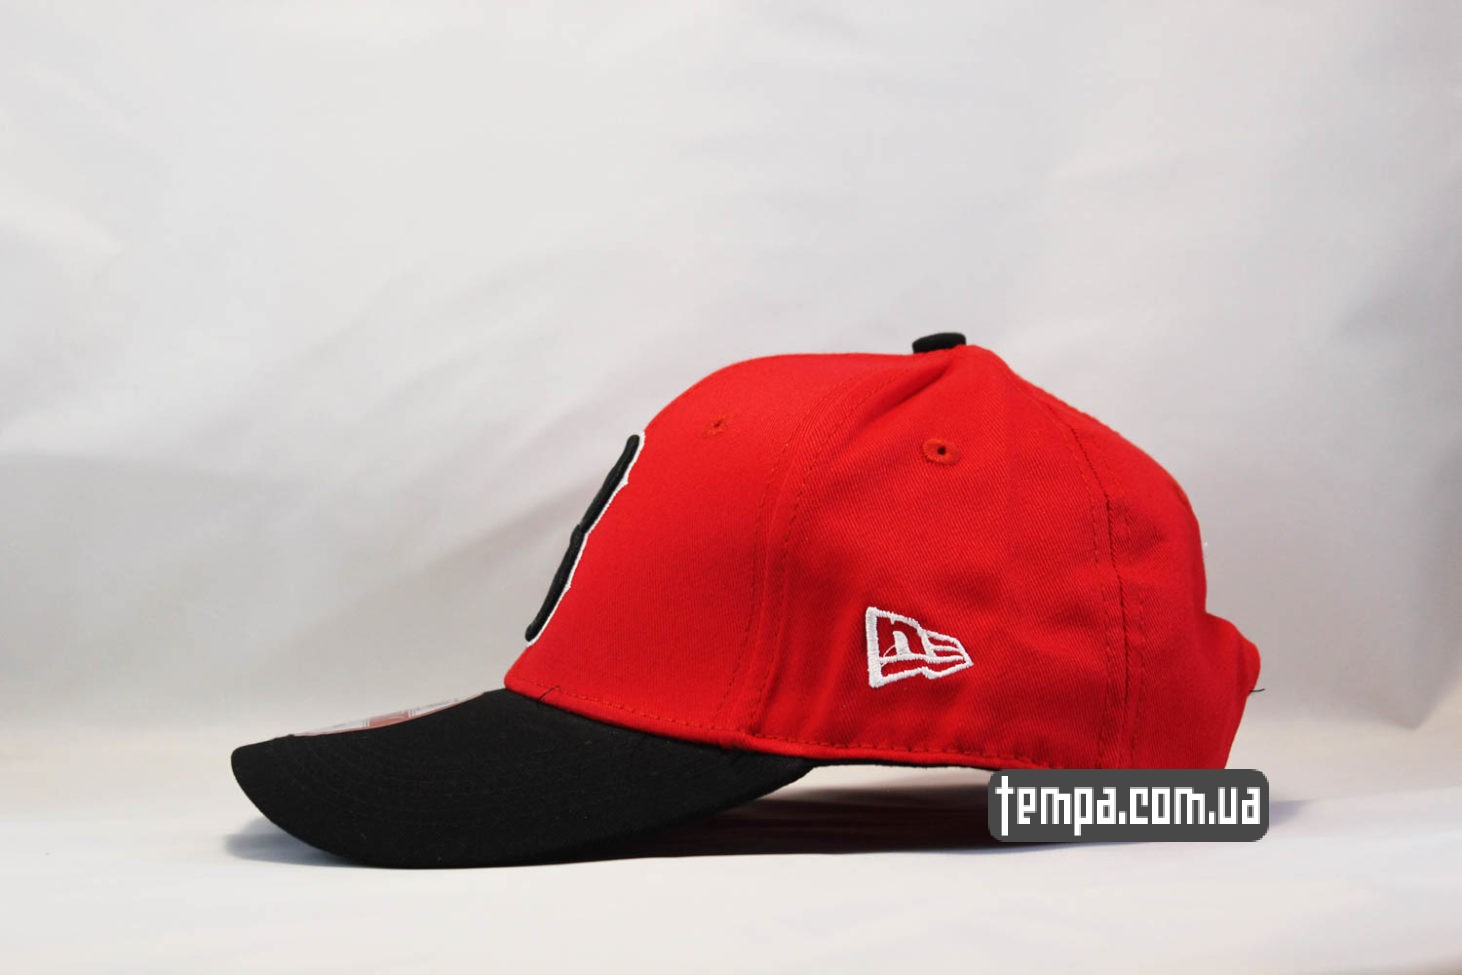 кепка с круглы козырьком кепка бейсболка BOSTON REDSOX красная new era